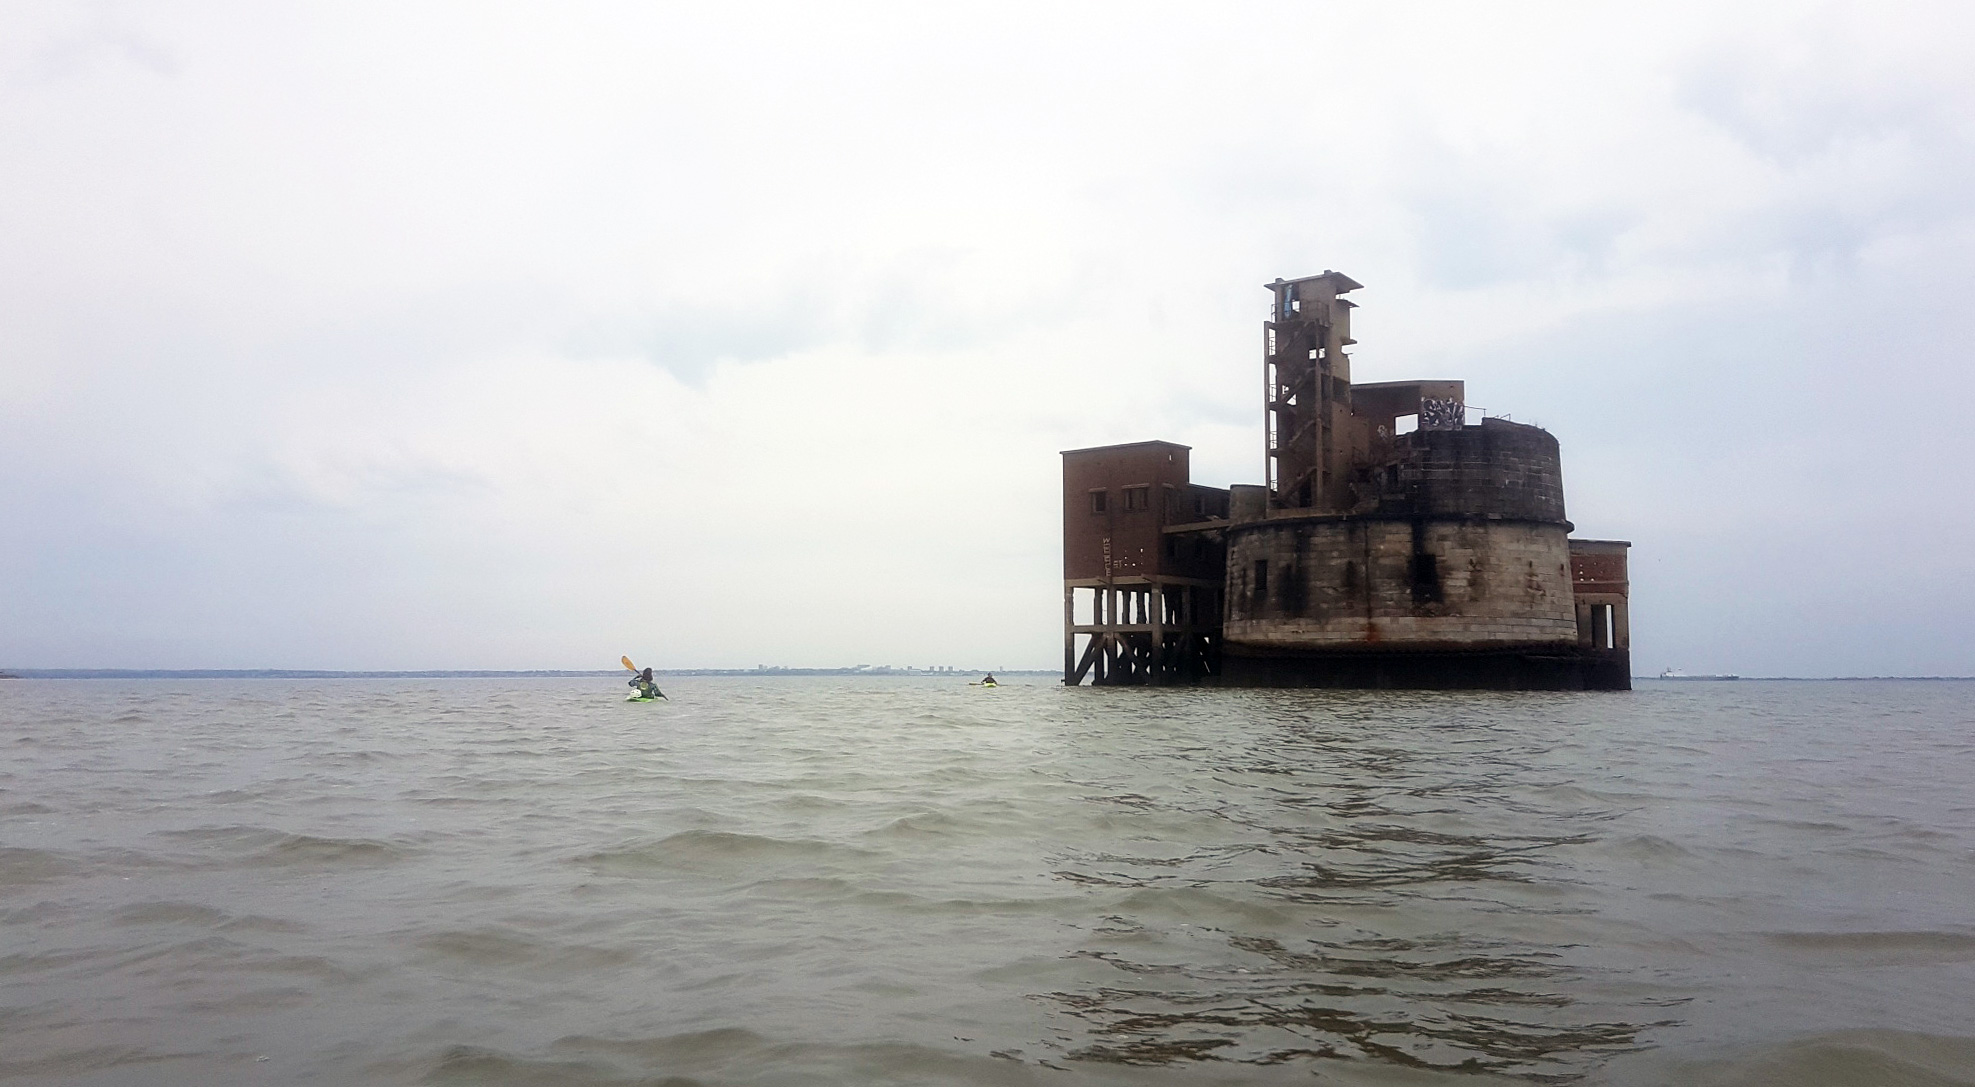 Kayakers approach Grain Tower Battery in the Medway estuary